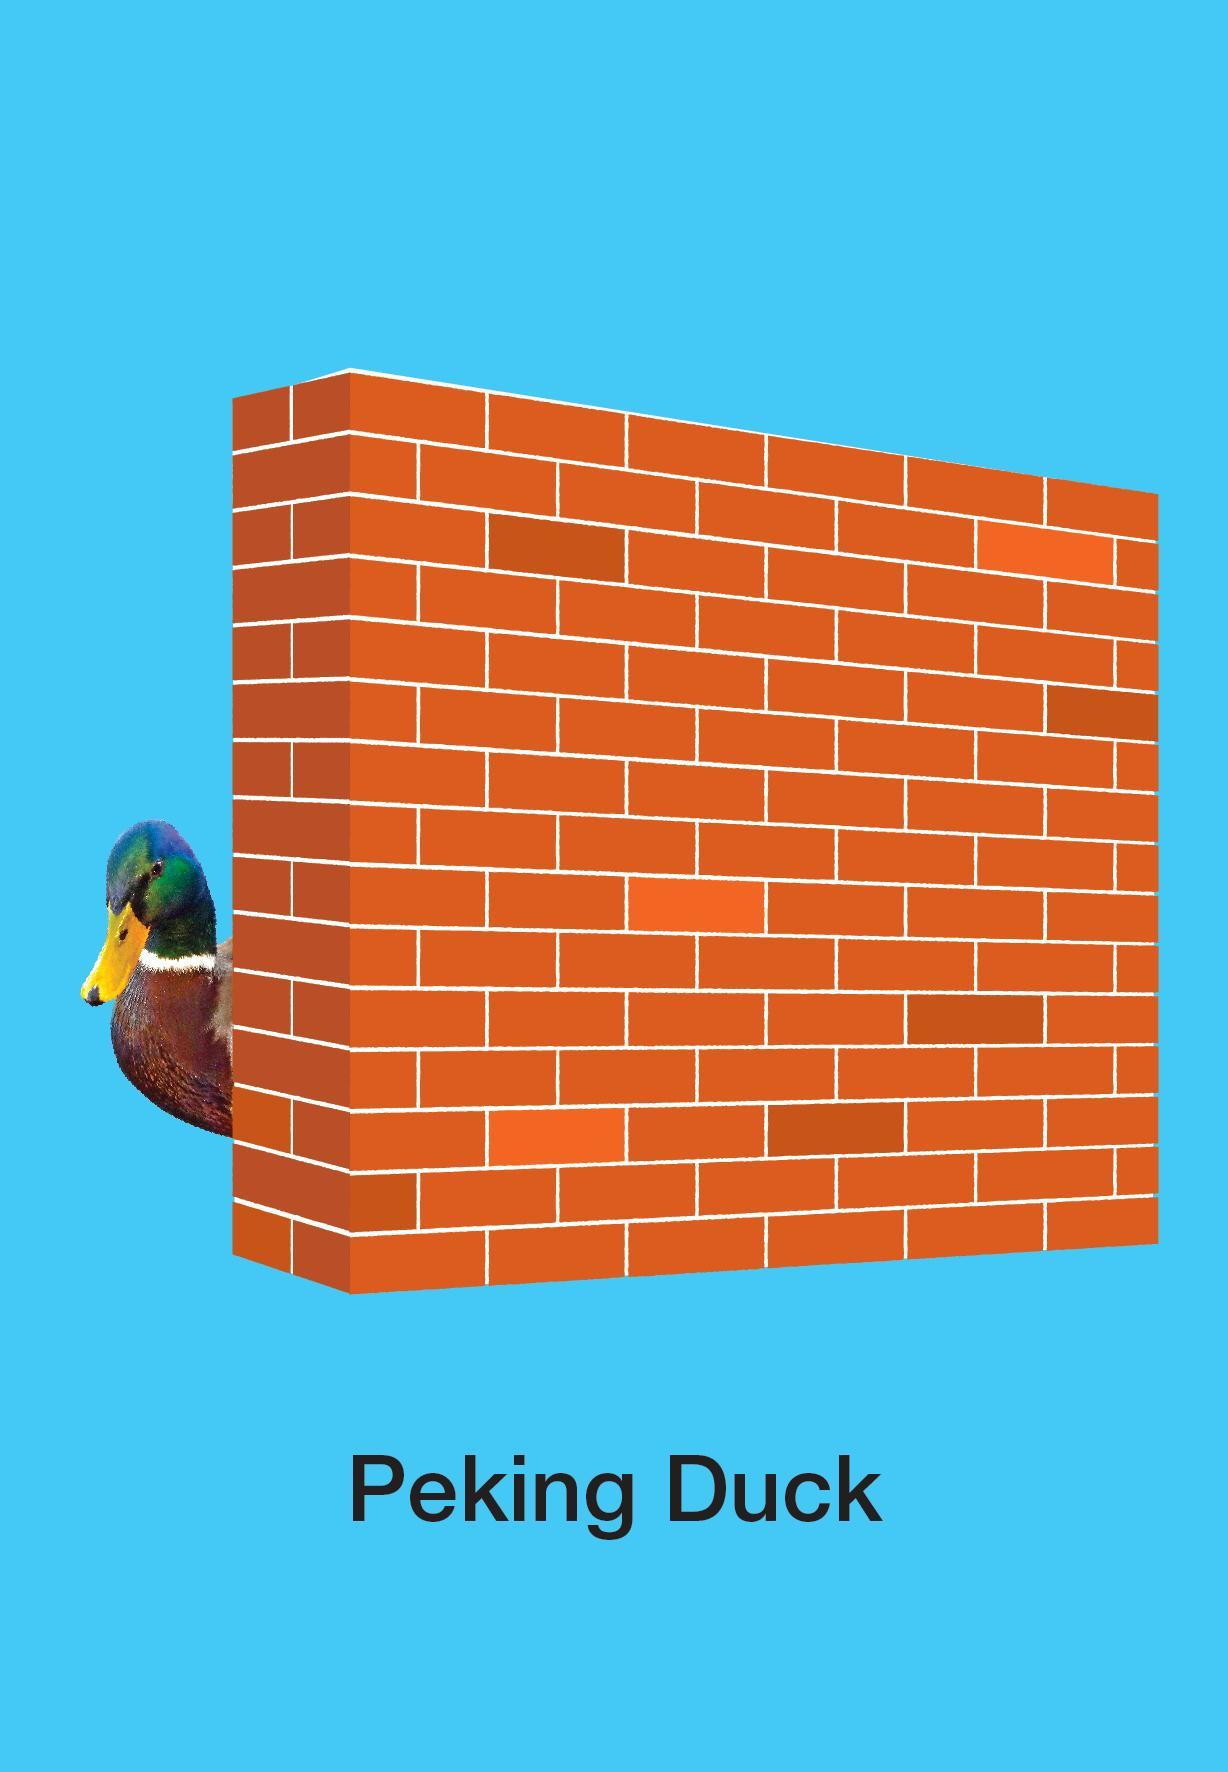 Peking Duck Card